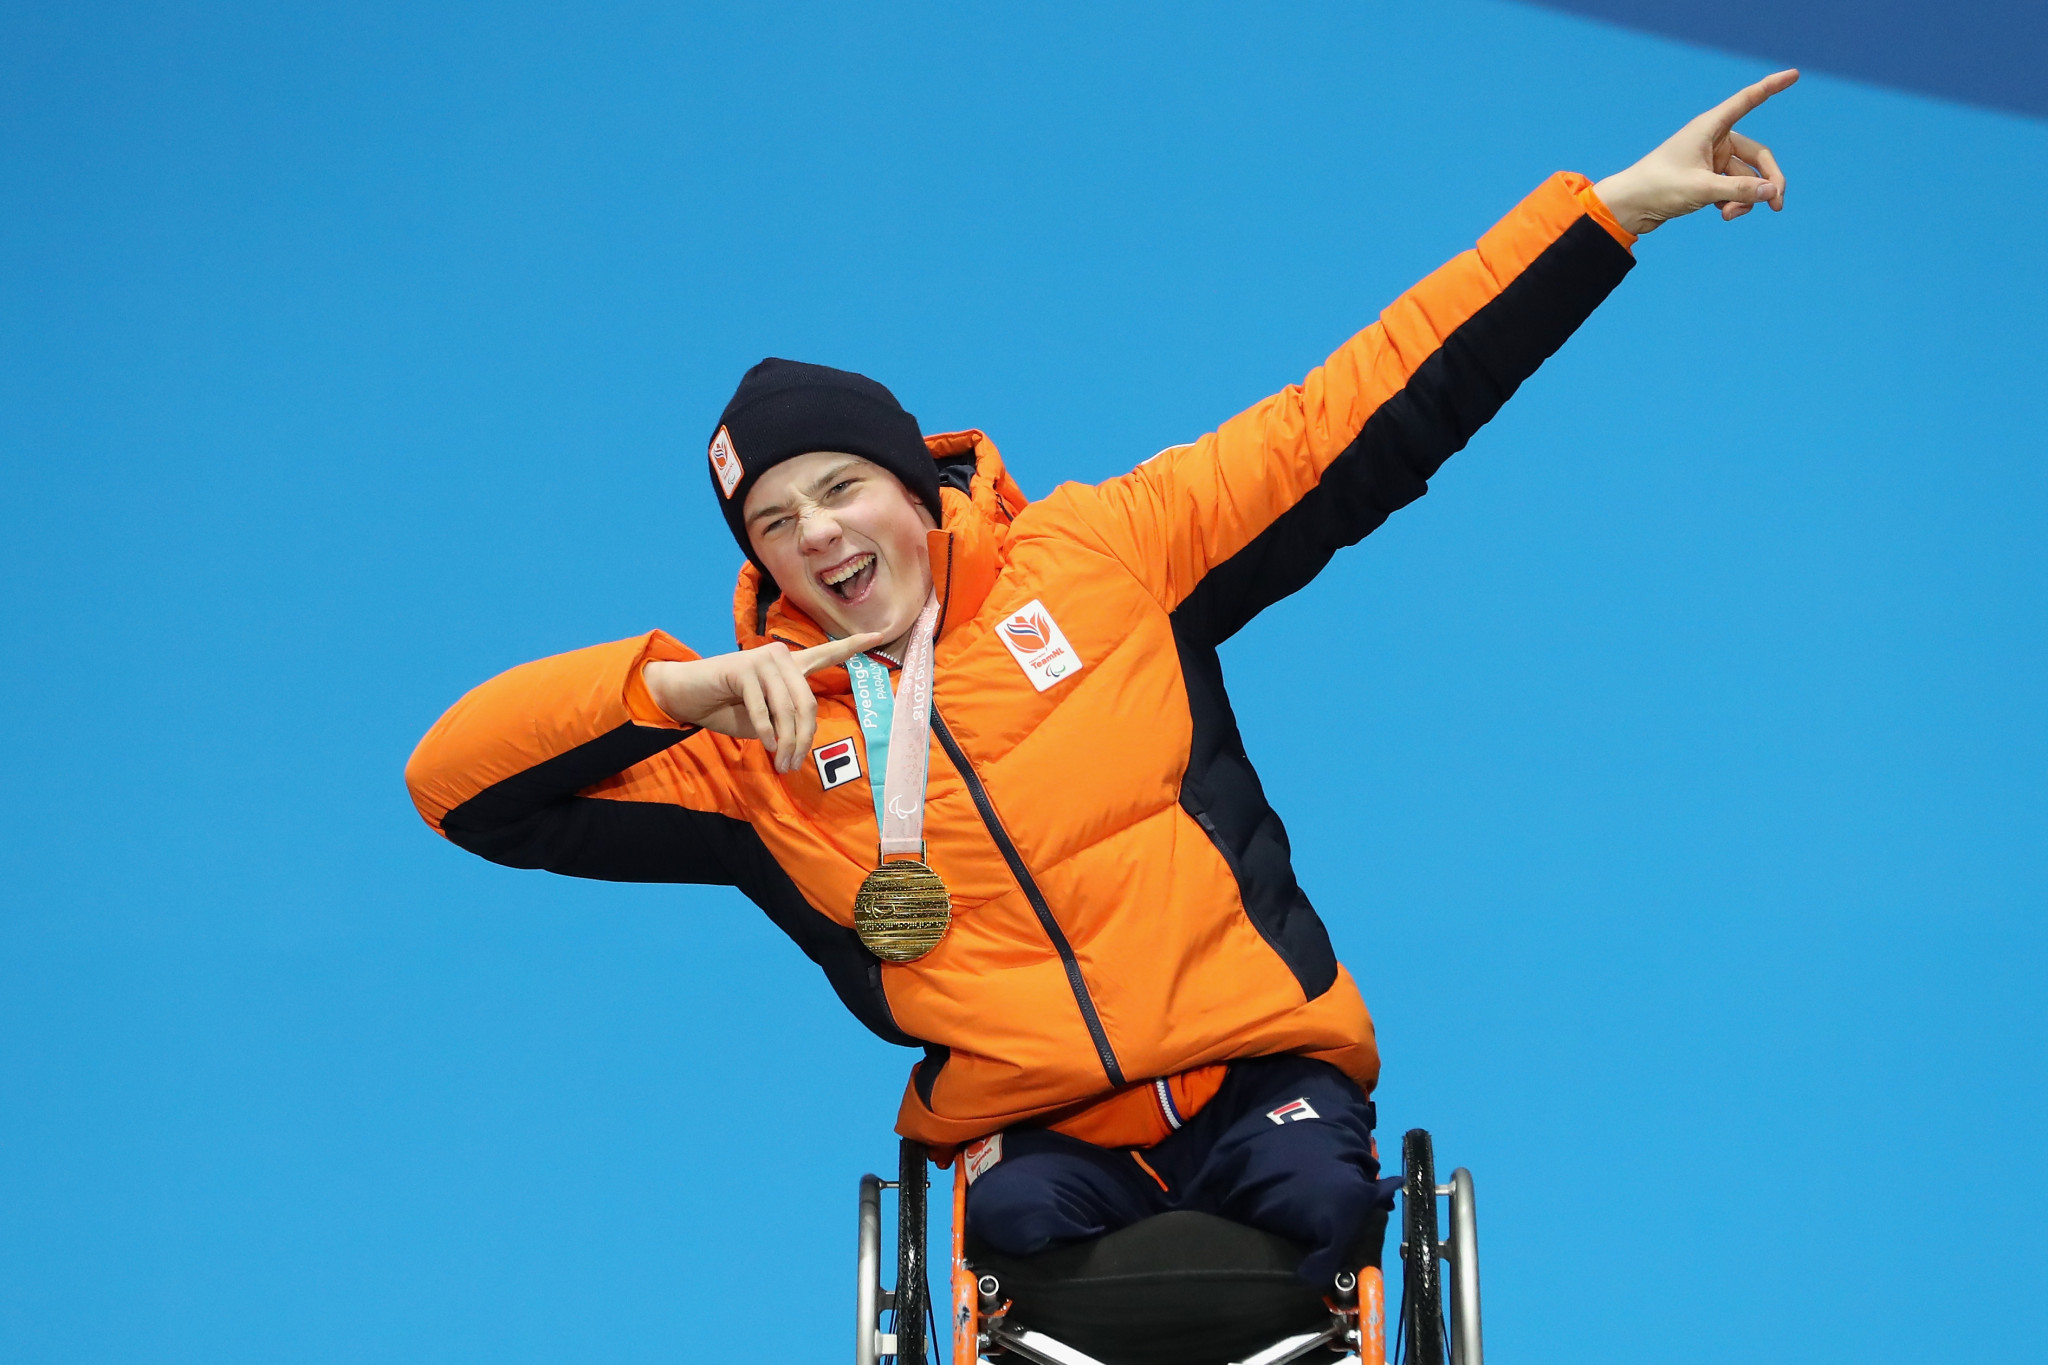 Dutch skier Jeroen Kampschreur has been named as the IPC's Allianz Athlete of the Month for January ©Getty Images